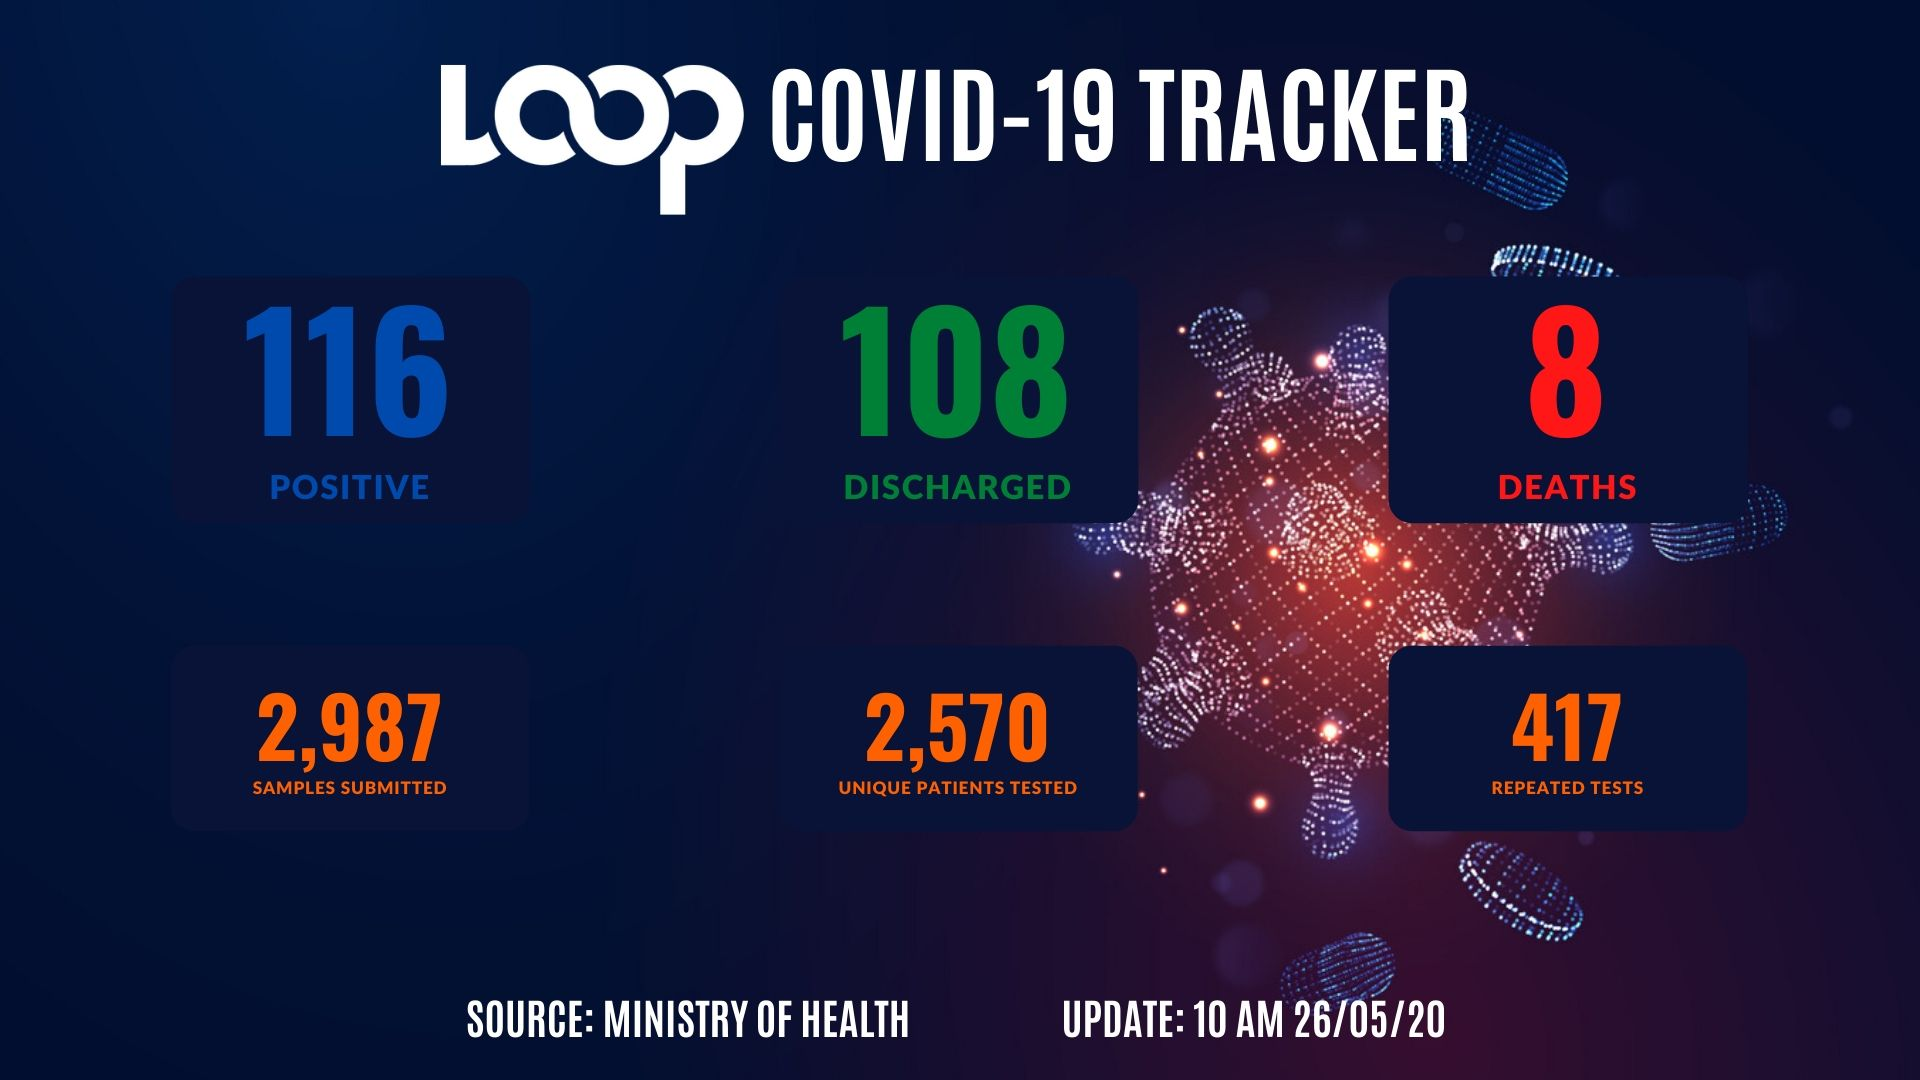 No new COVID-19 cases; 57 more unique samples taken in 24 hours